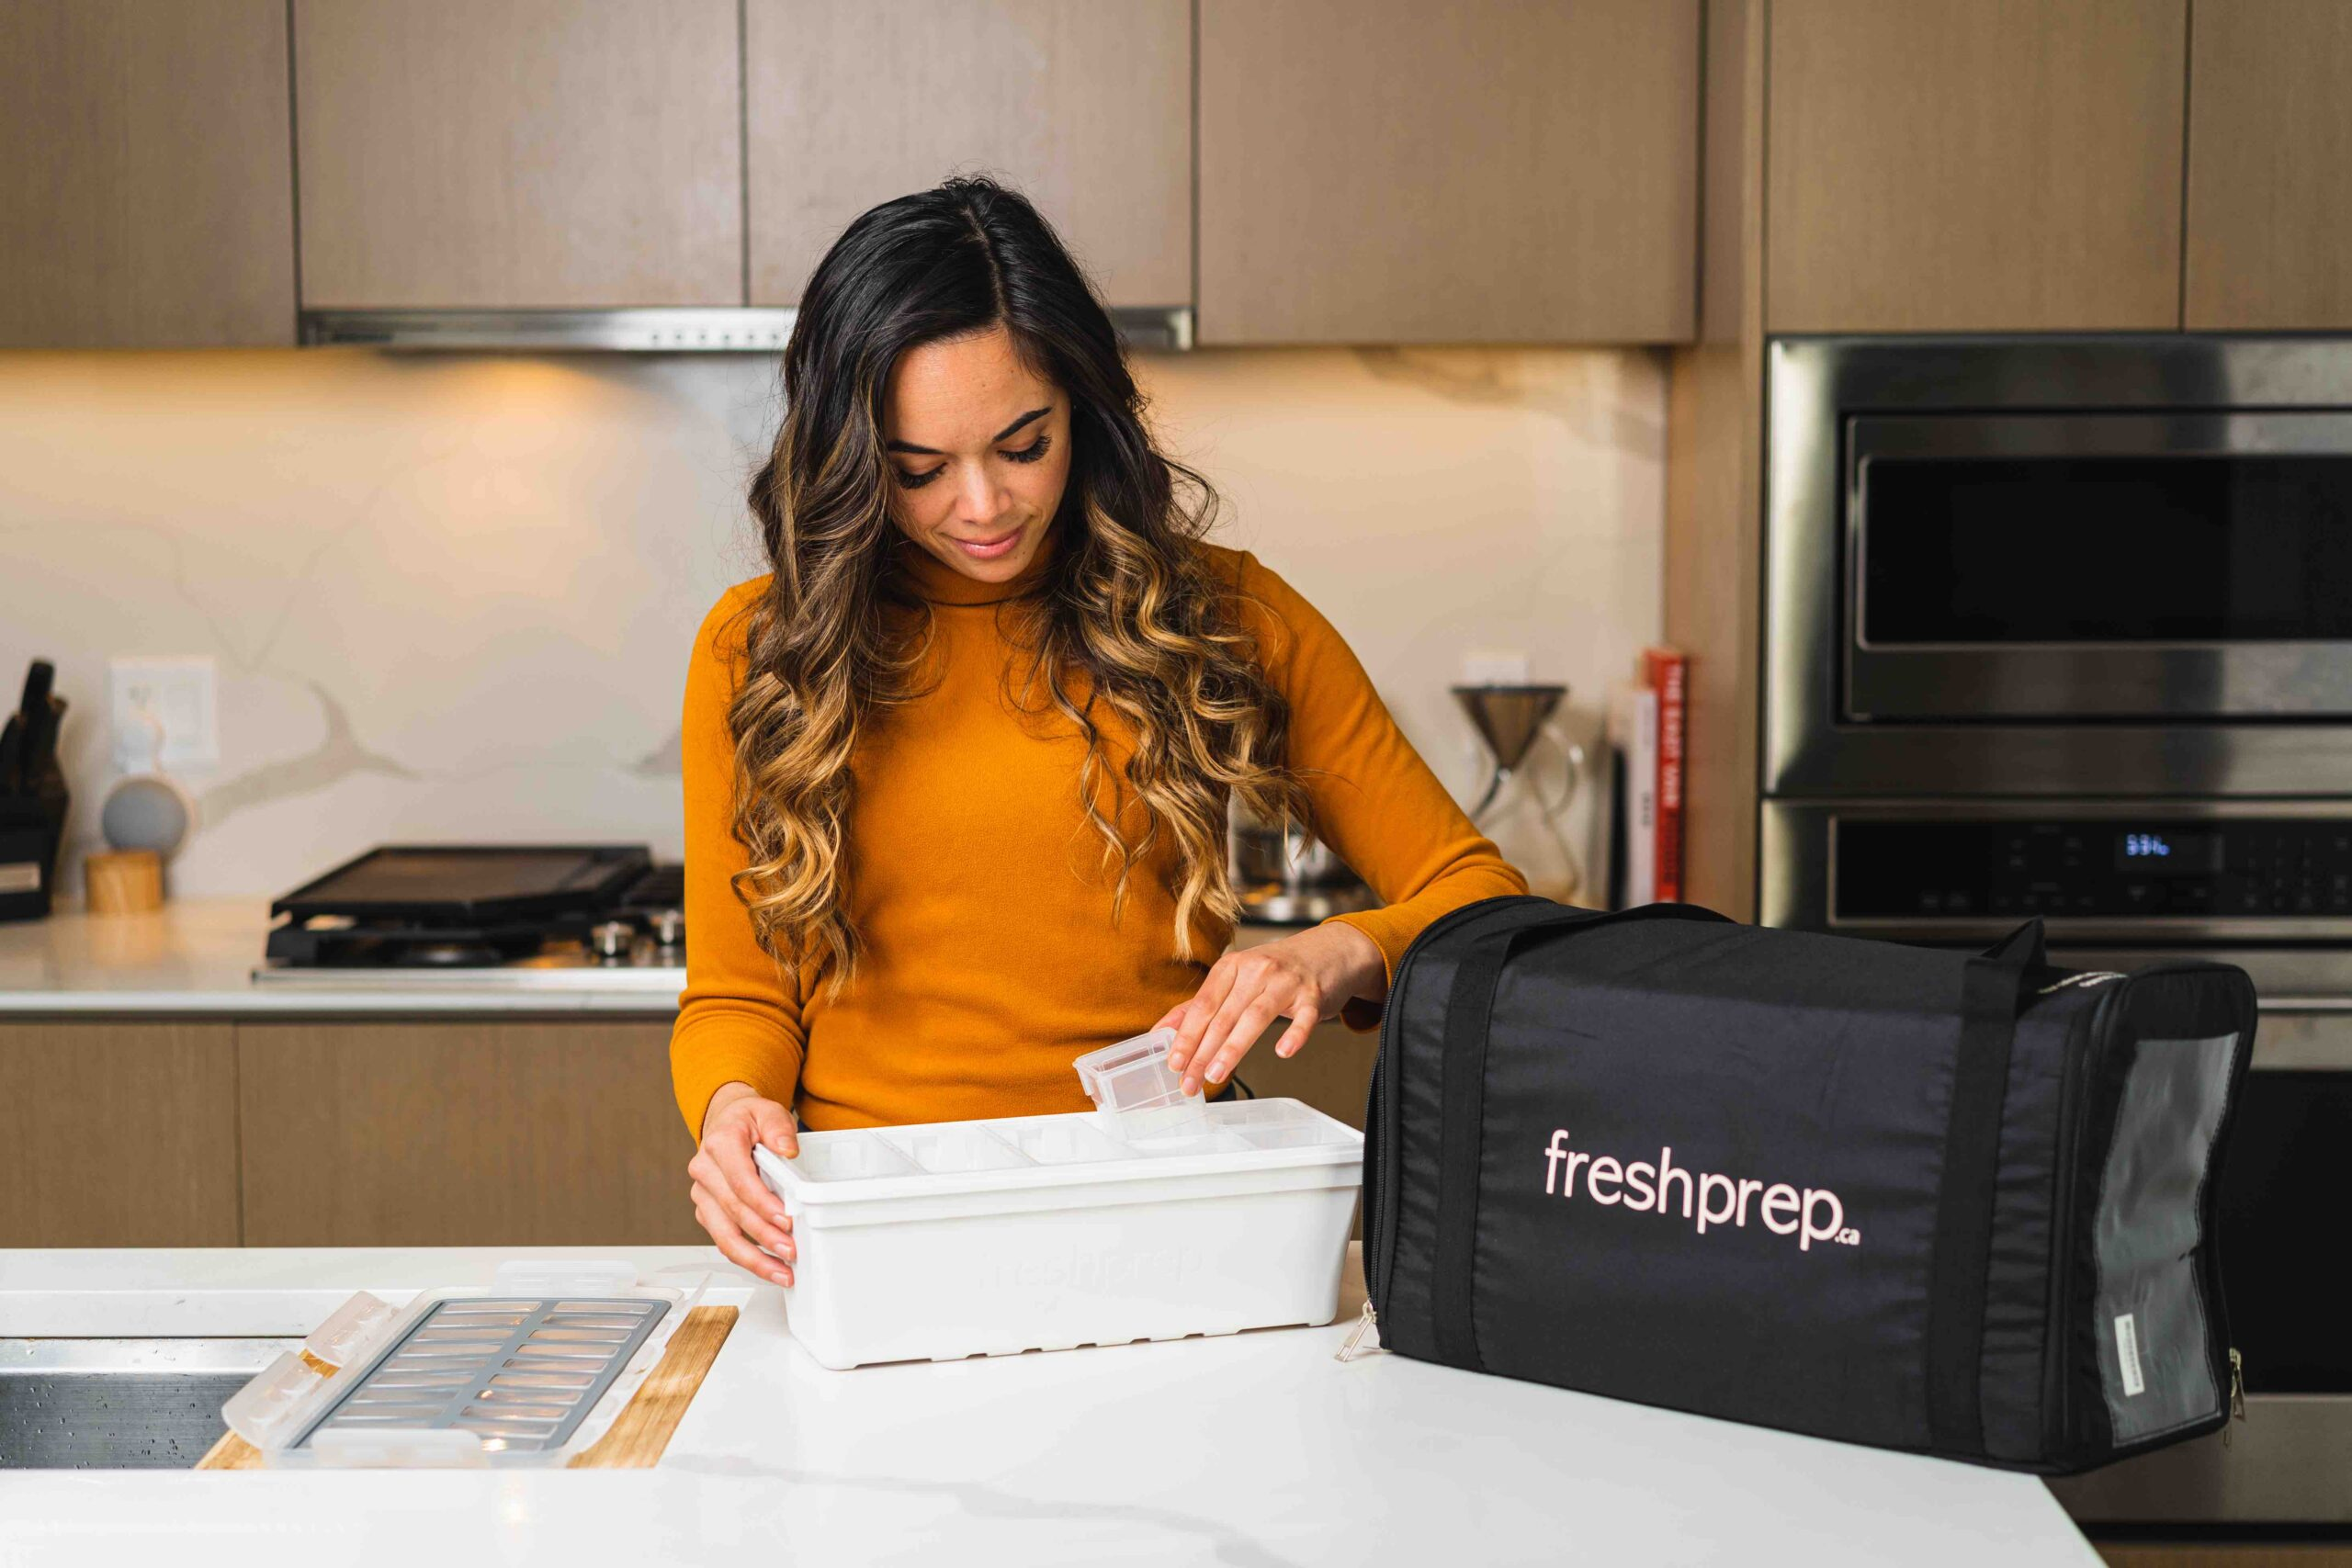 zero waste meal kits from fresh prep vancouver